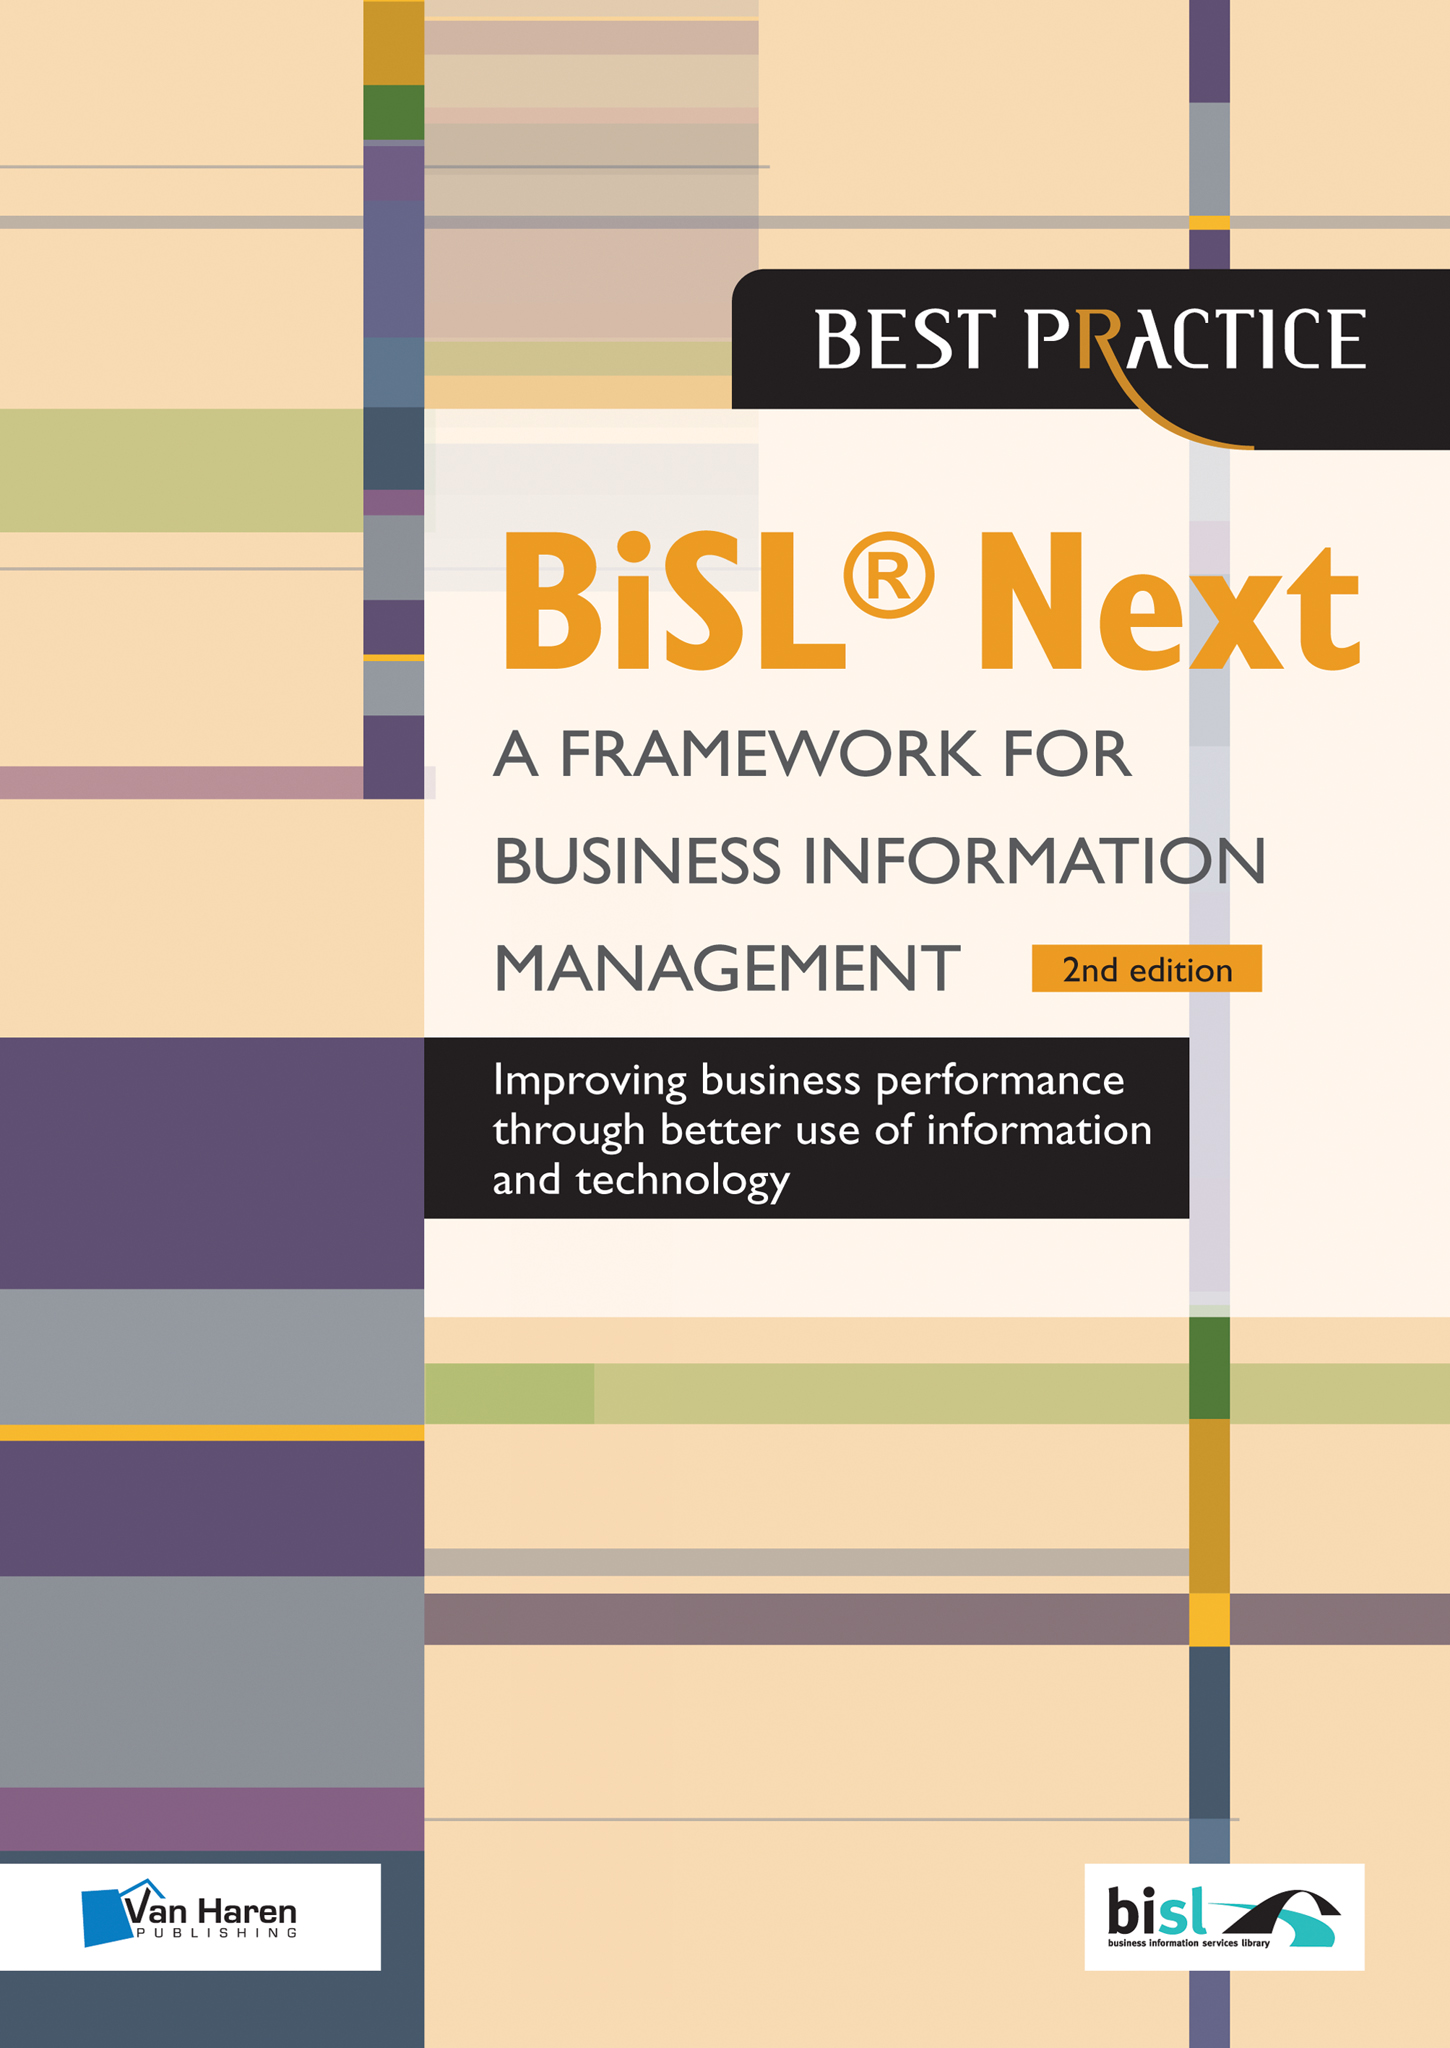 BiSL ®Next, framework for Business Information Management – in 3 minutes